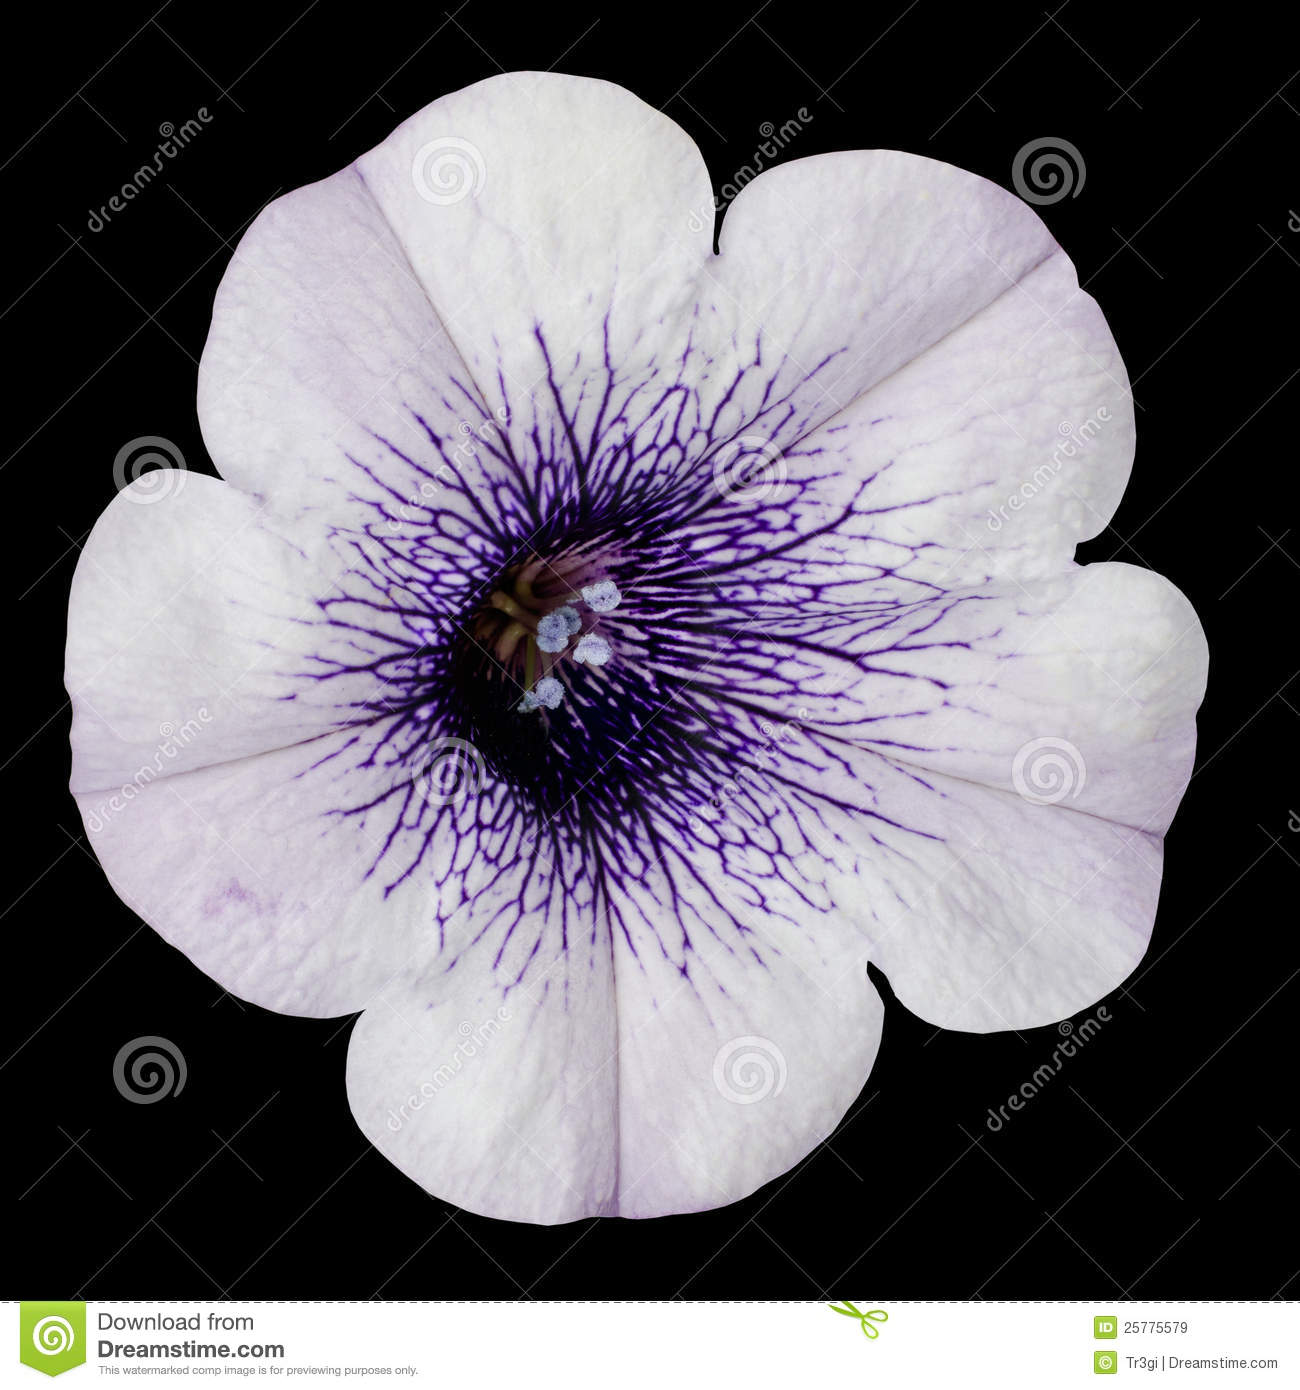 White morning glory flower with purple center stock image image of white morning glory flower with purple center mightylinksfo